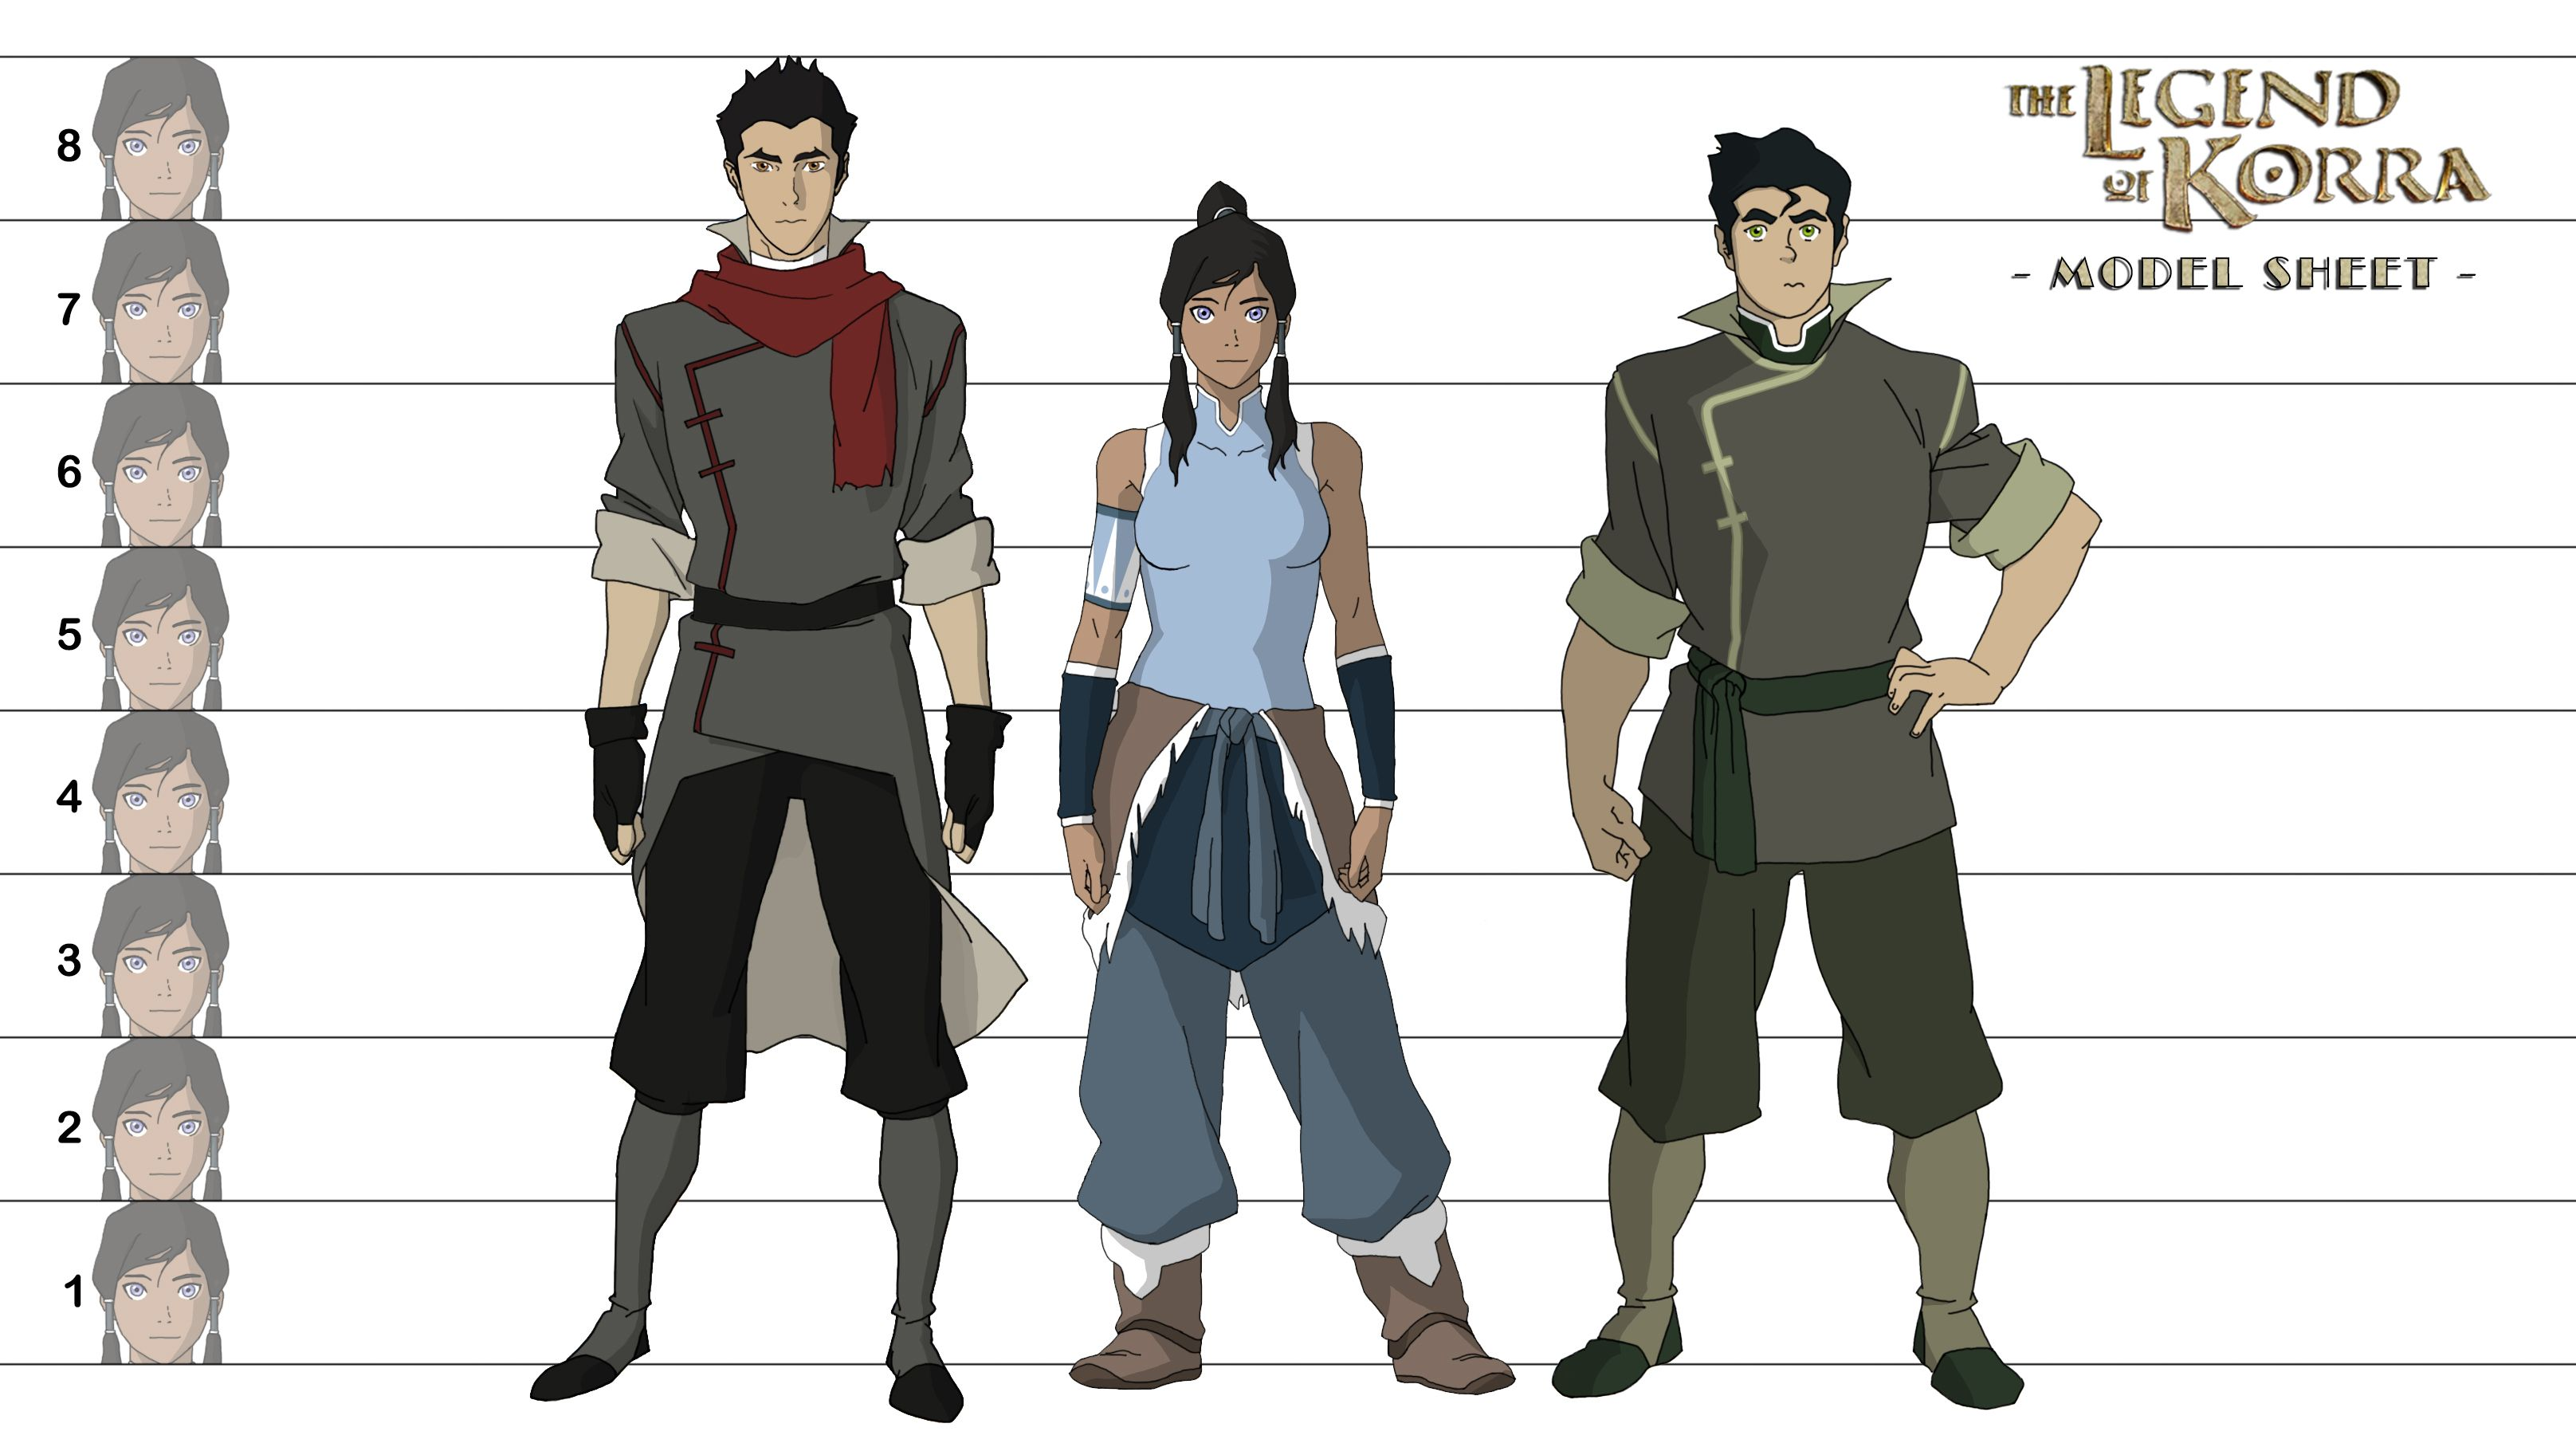 avatar character sheet legend of korra : model sheetsamcote.deviantart on